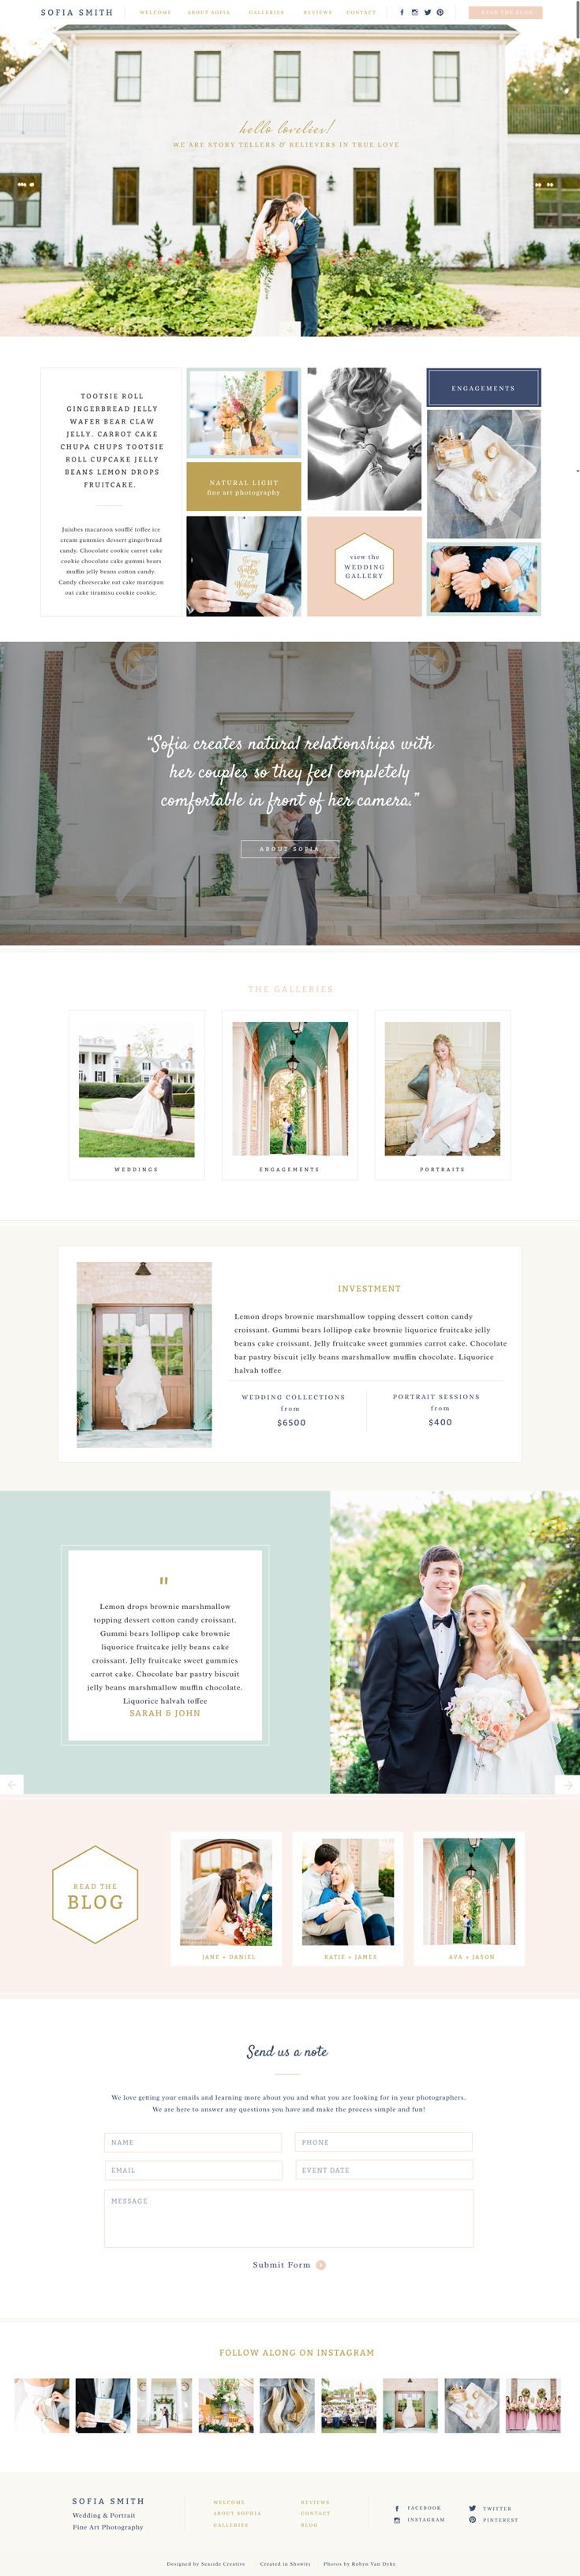 Sofia Showit 5 Website Template Design by Seaside Creative.   Elegant, Intimate, Friendly, Classy, Natural